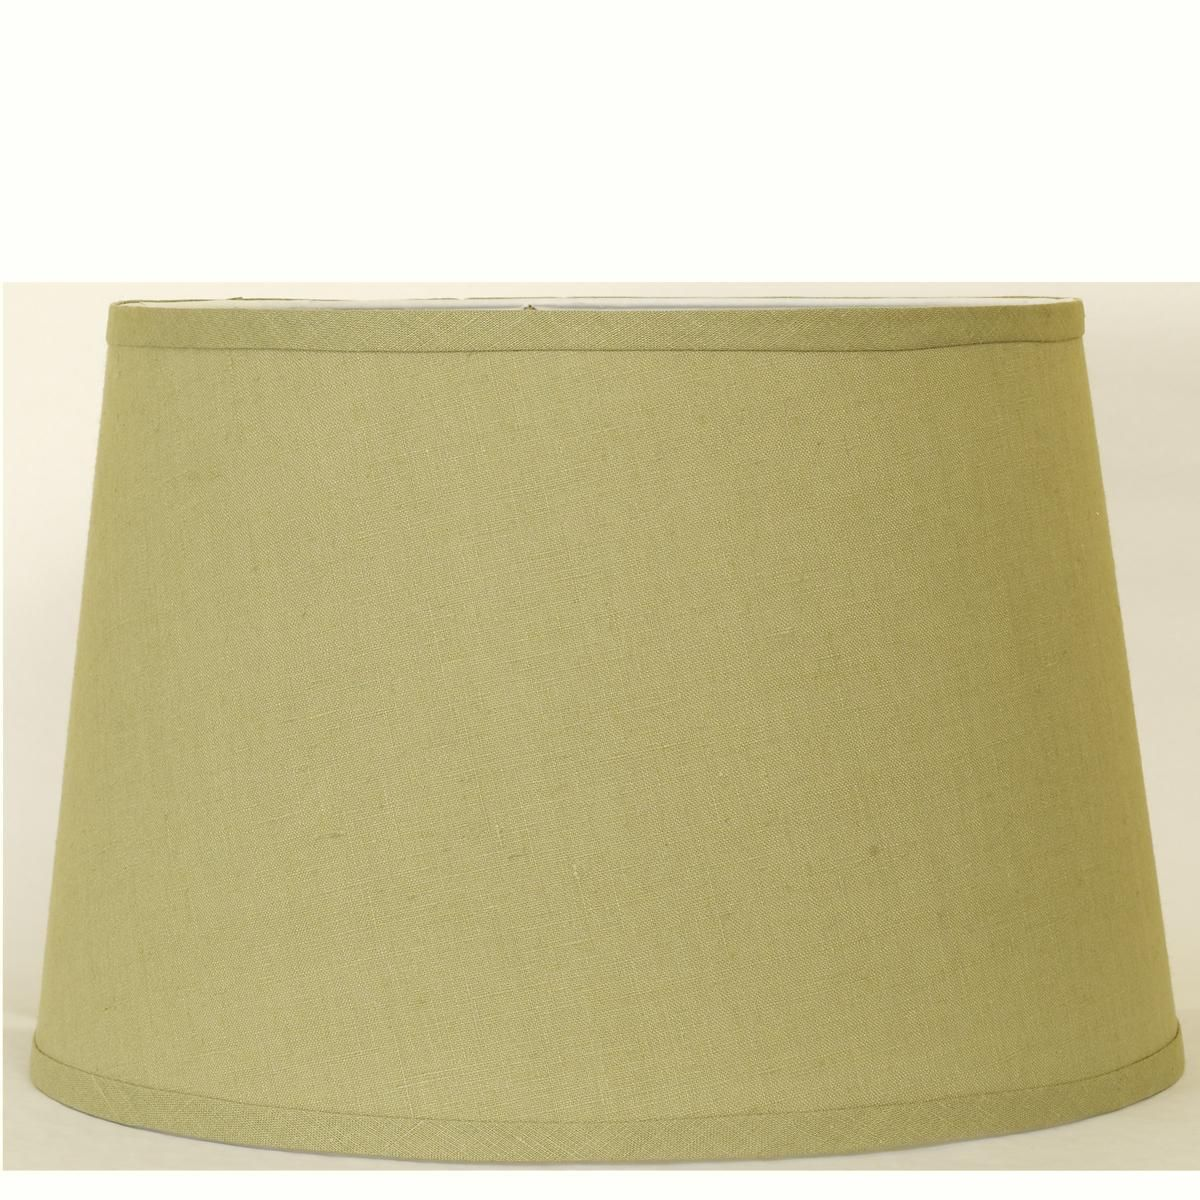 17 linen table lamp shade living spaces pinterest table 17 linen table lamp shade hawaiian geotapseo Gallery